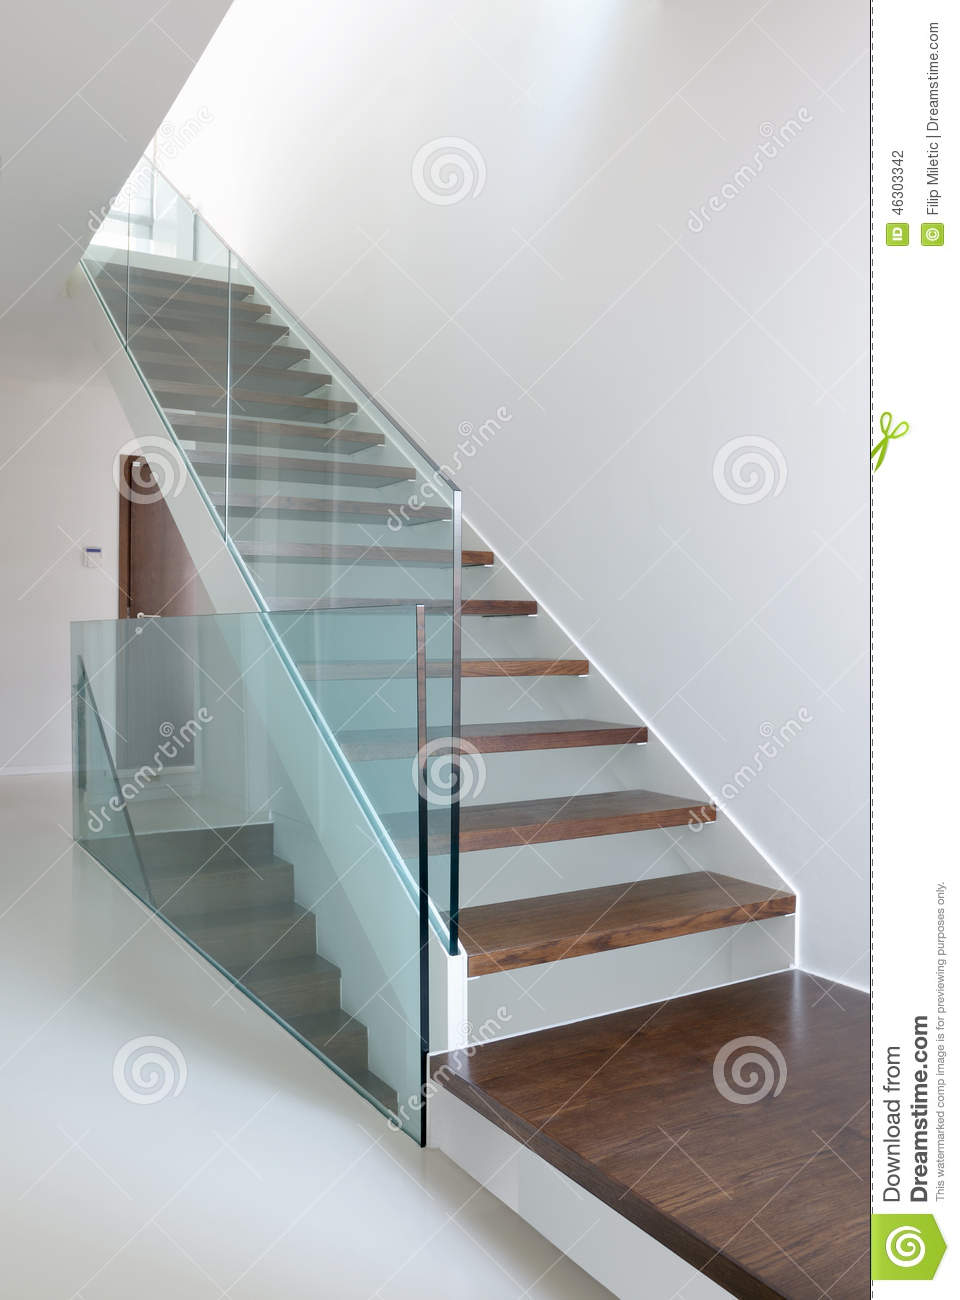 wooden stairs with glass balustrade stock photo image. Black Bedroom Furniture Sets. Home Design Ideas